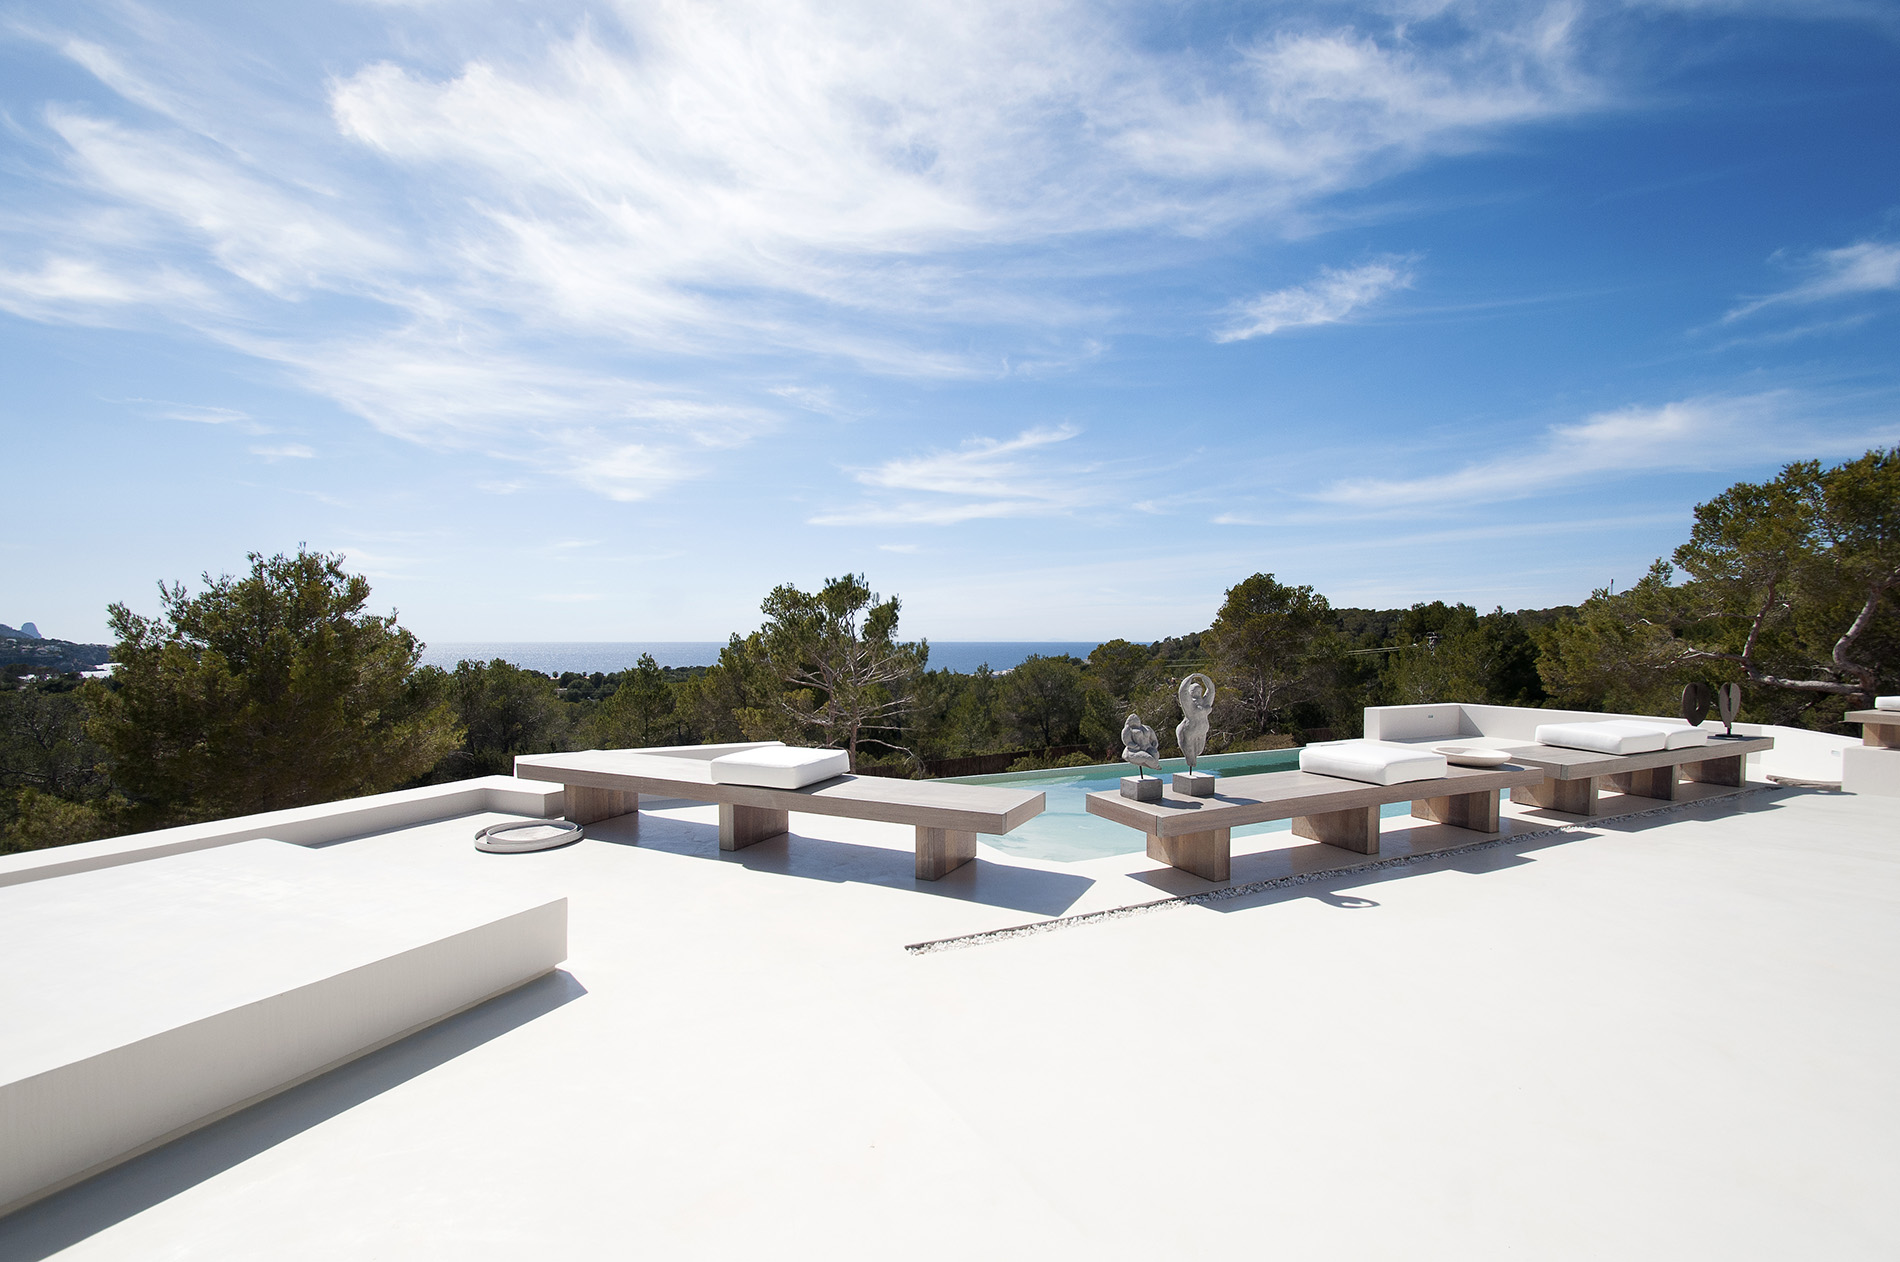 独户住宅 为 销售 在 Designer Villa With Sea And Sunset Views Ibiza 何塞普, 西亚特, 07830 西班牙